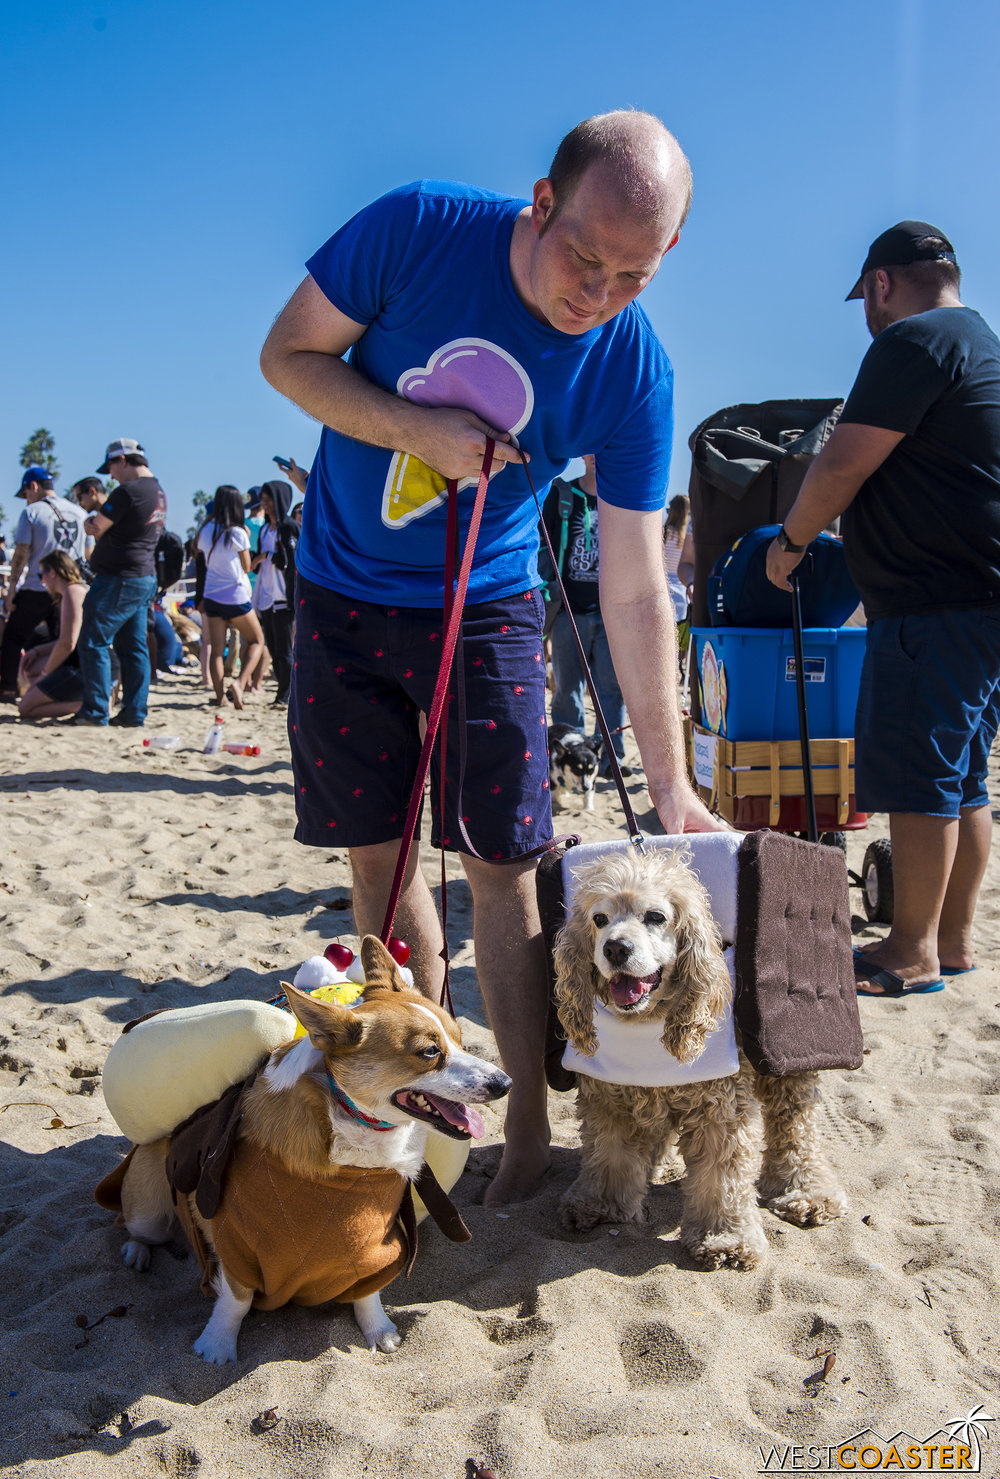 Some of the costumes were elaborate and home-made!  Kudos to the dog owners for their love and commitment to their pups.